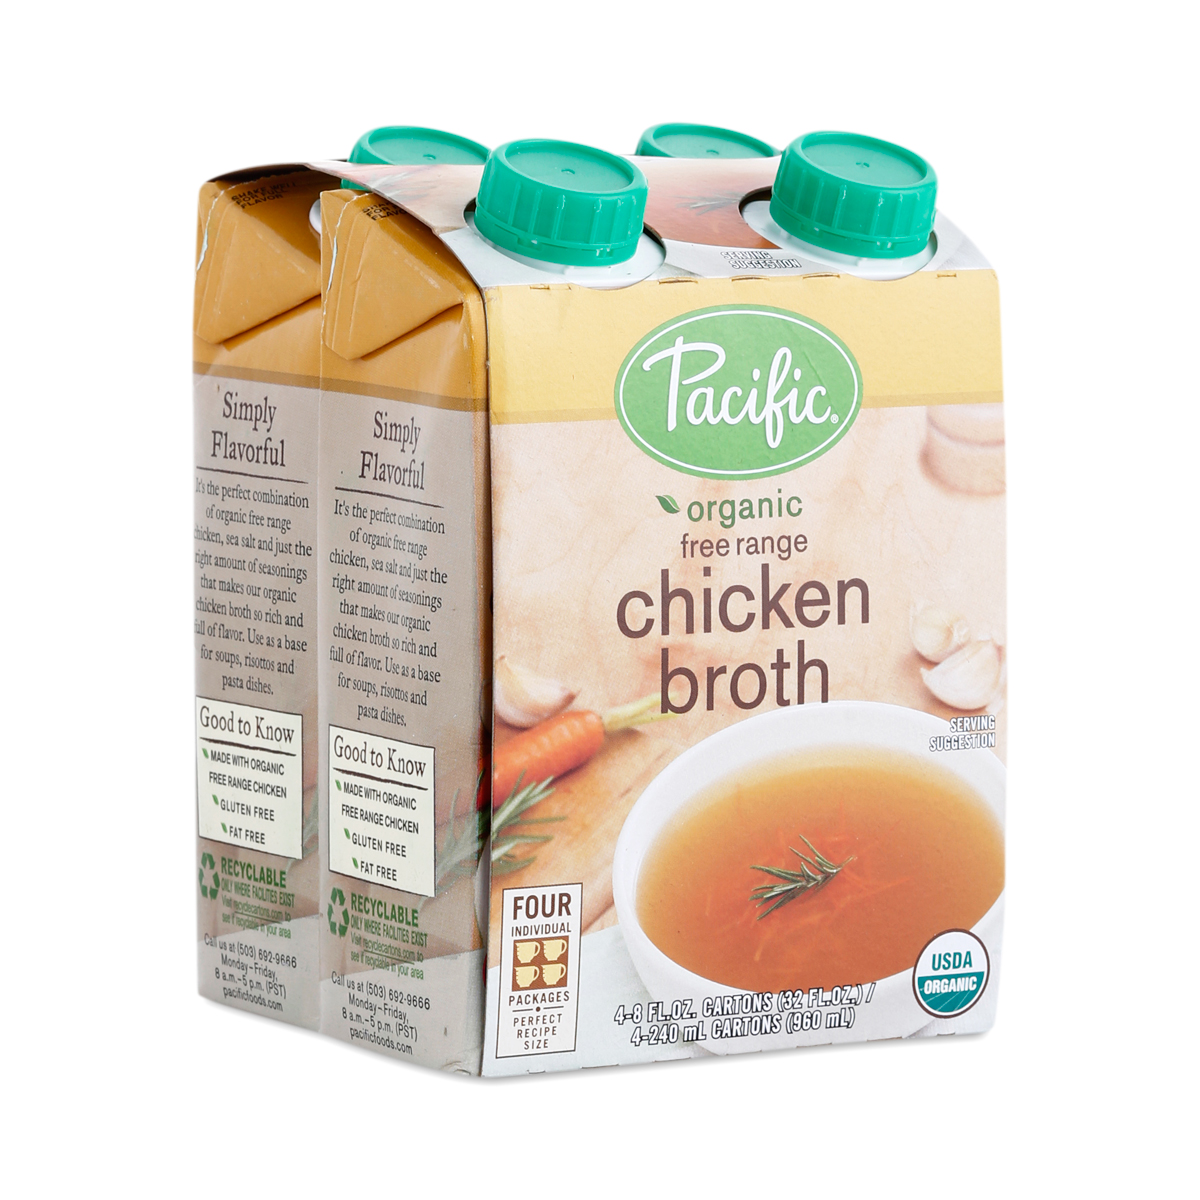 Vegan At The Counter additionally Graduation Party Food Ideas together with 6000035329712 as well Native Forest Organic Unsweetened Coconut Cream 2 Pack further Pacific Foods Organic Free Range Chicken Broth. on steak toppings sauces